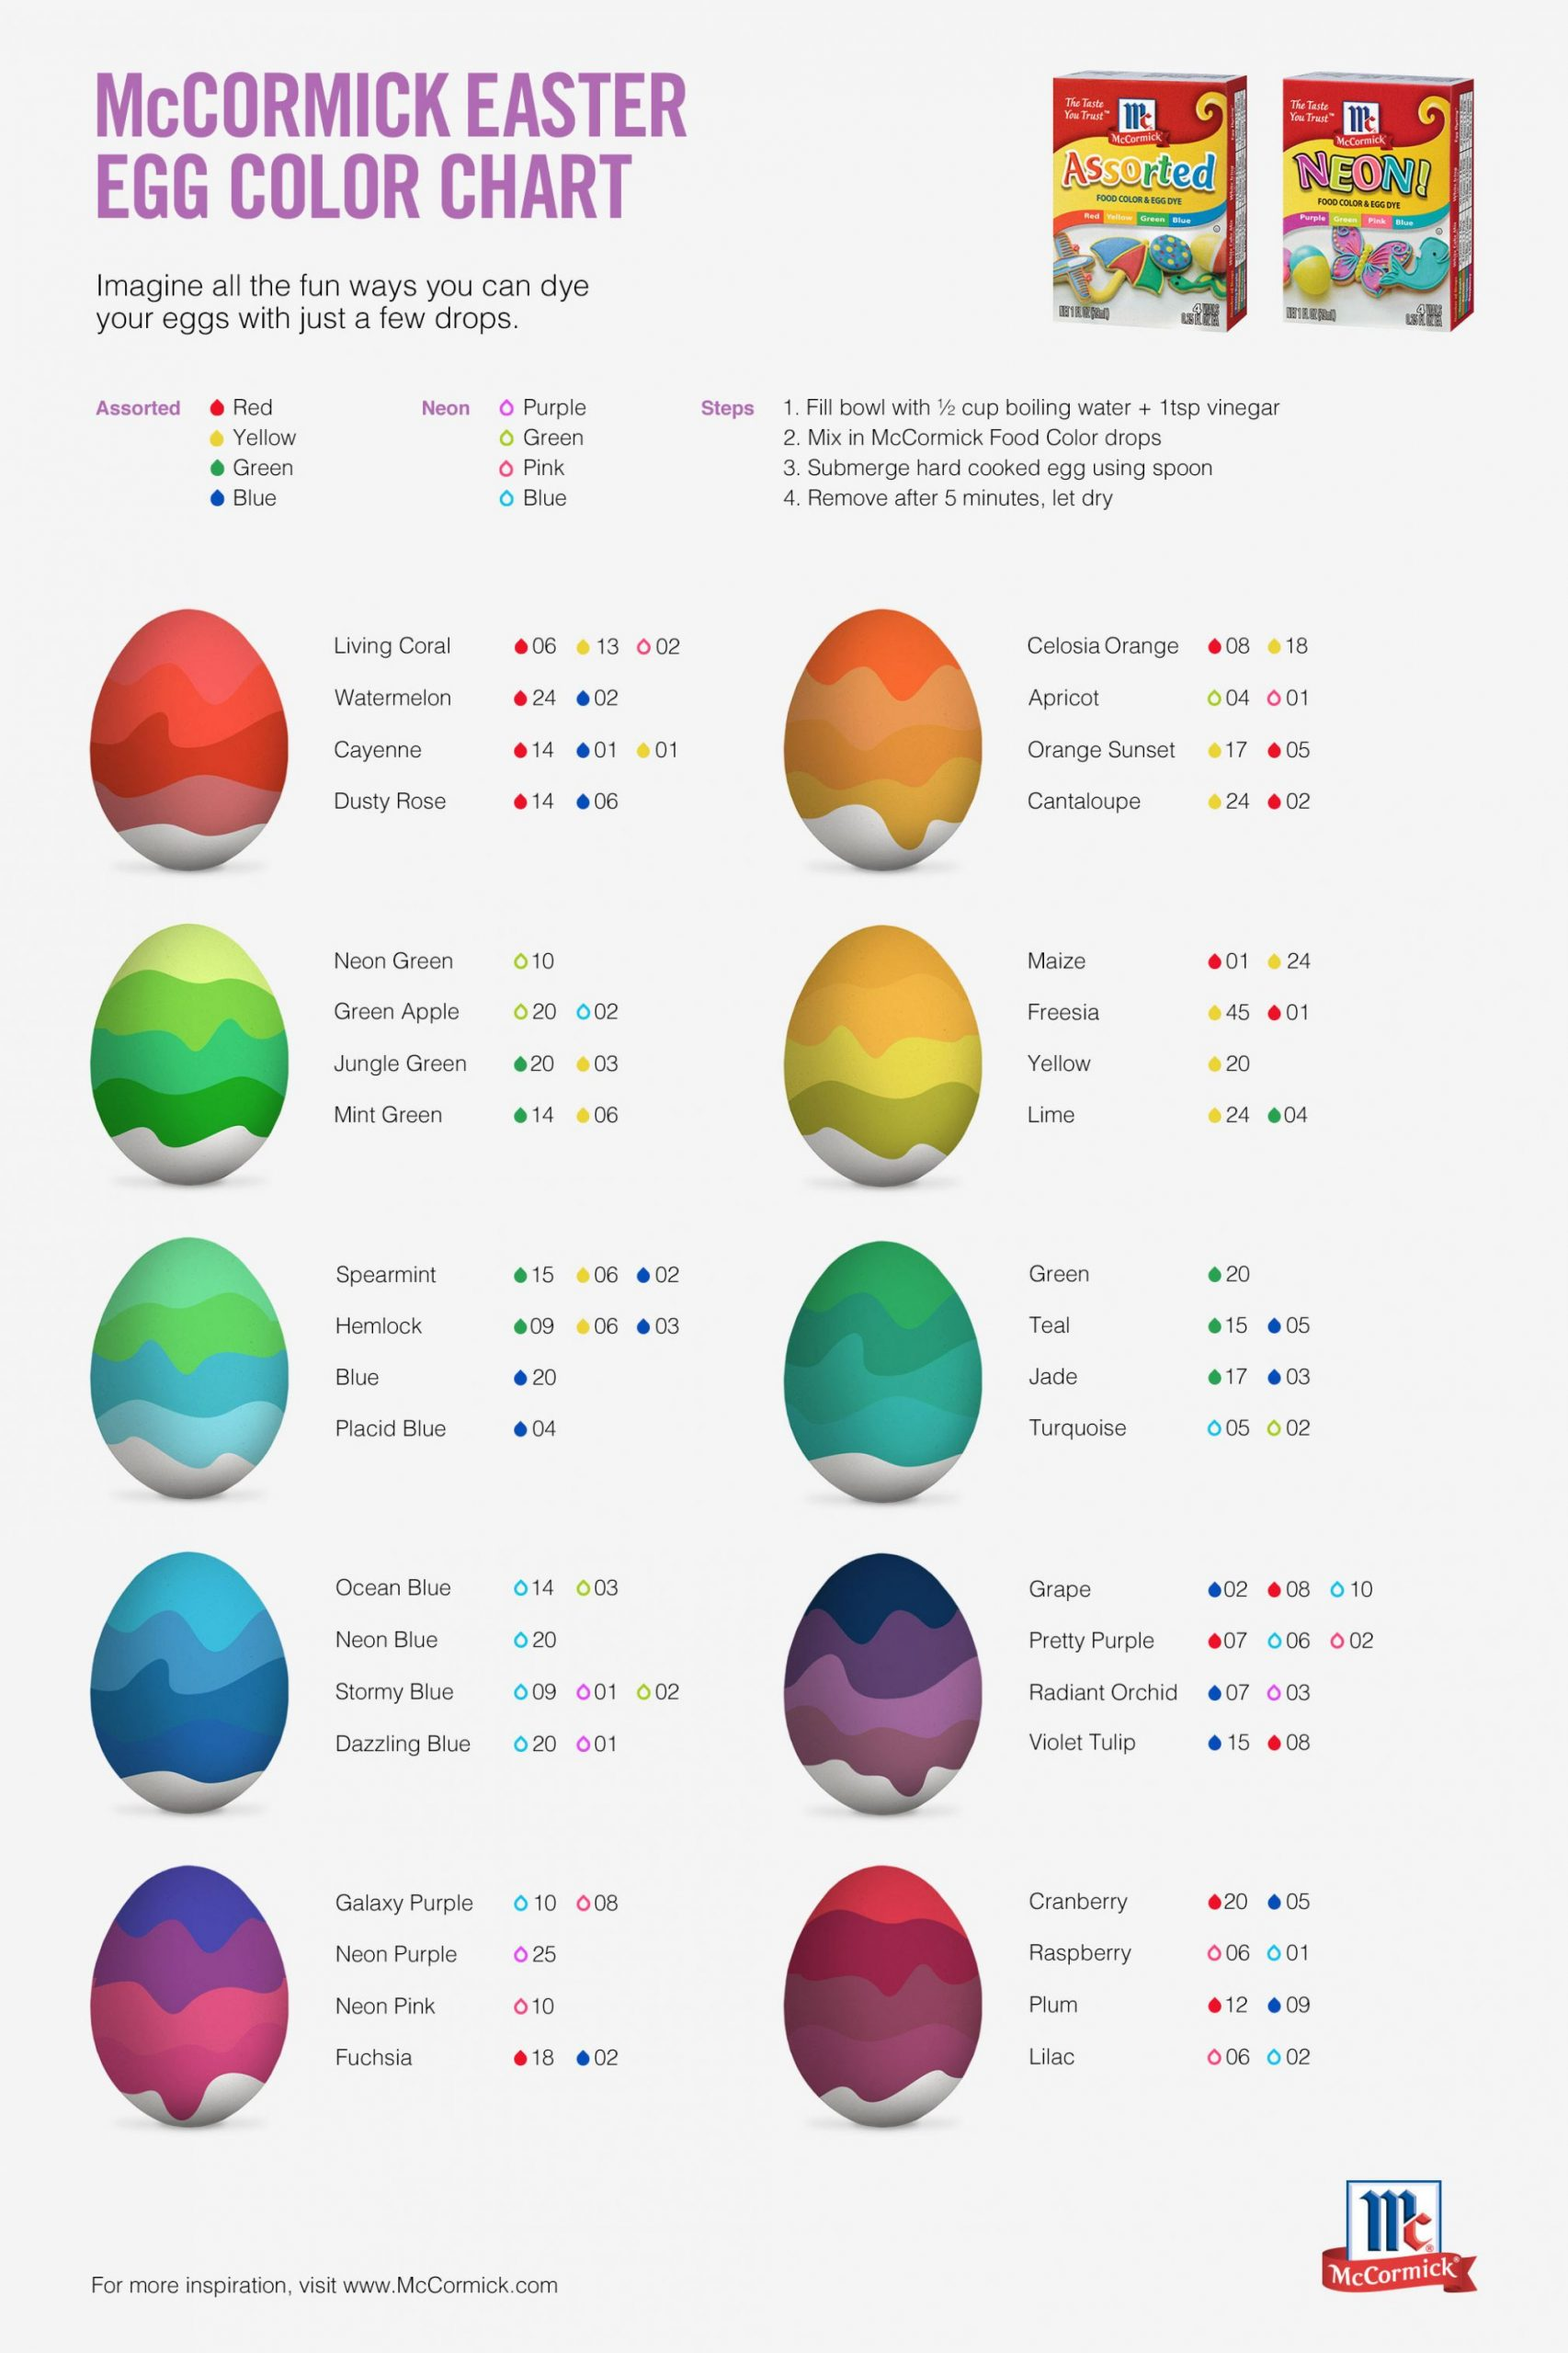 How to Dye Easter Eggs | McCormick